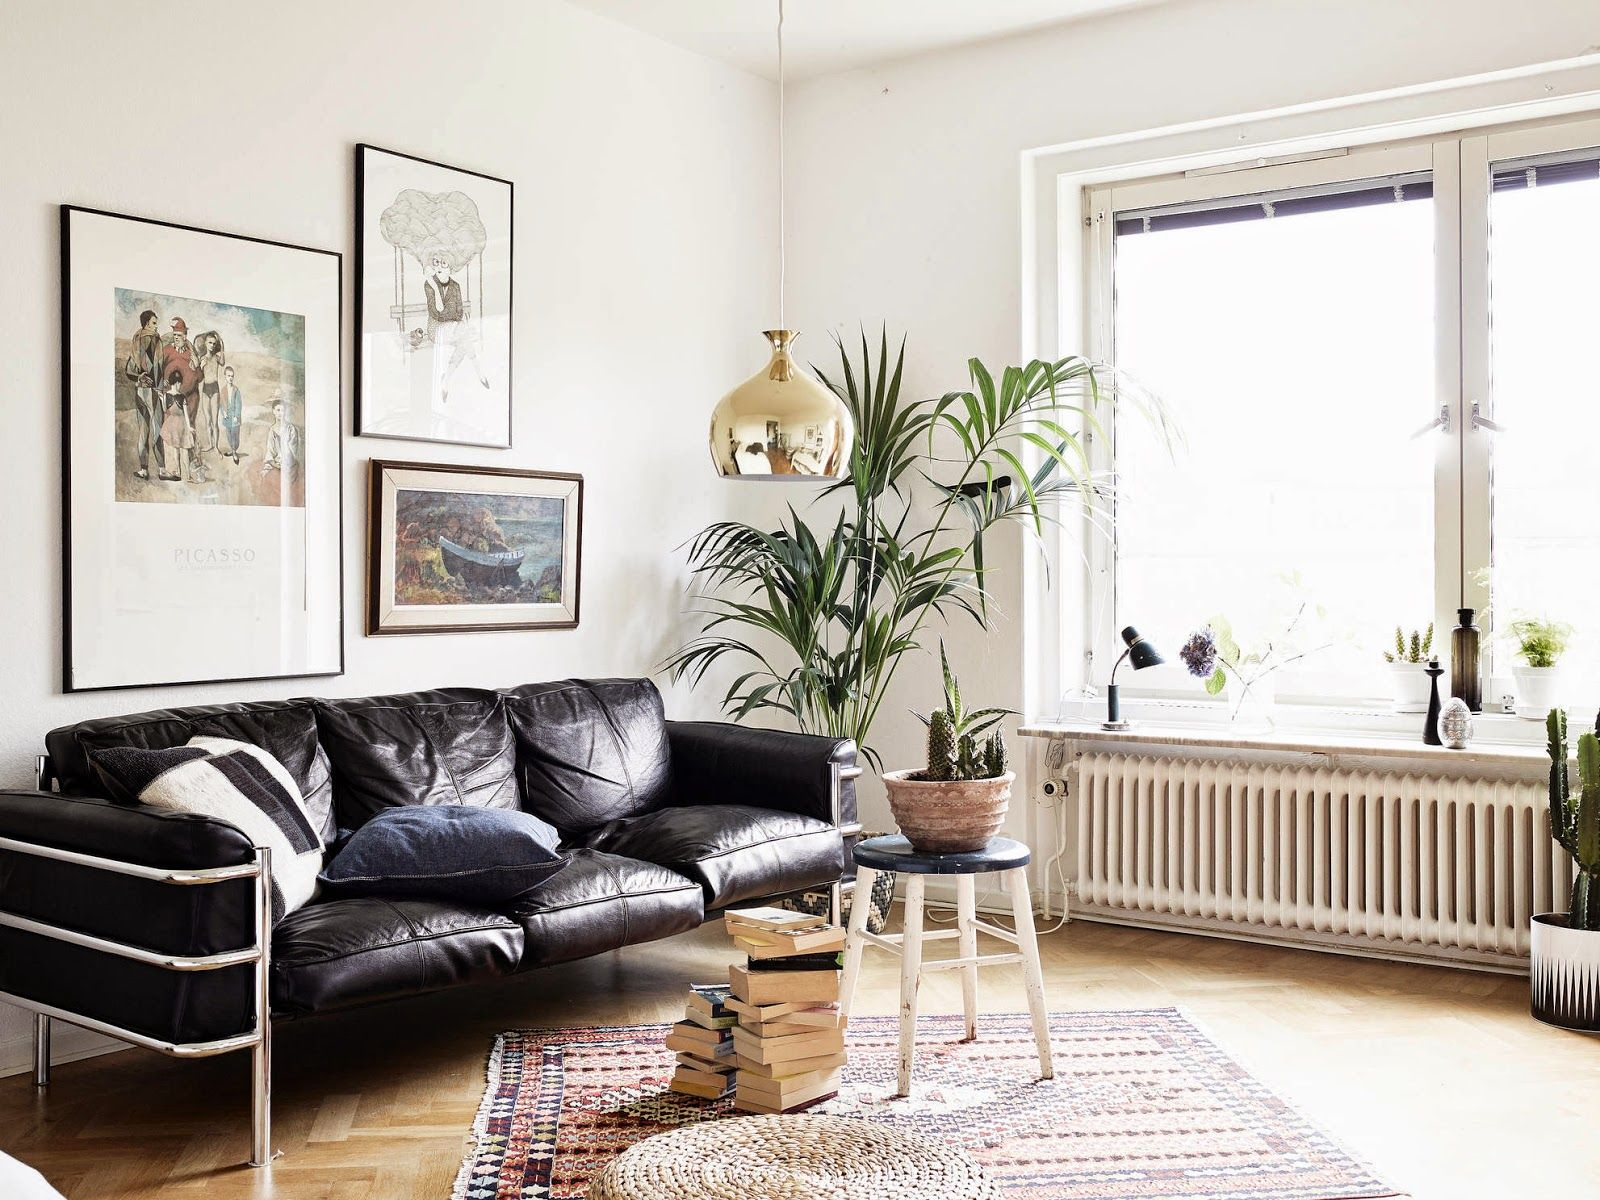 Big Couch Small Door A Small Space With A Big Personality Apartment Stuff Black